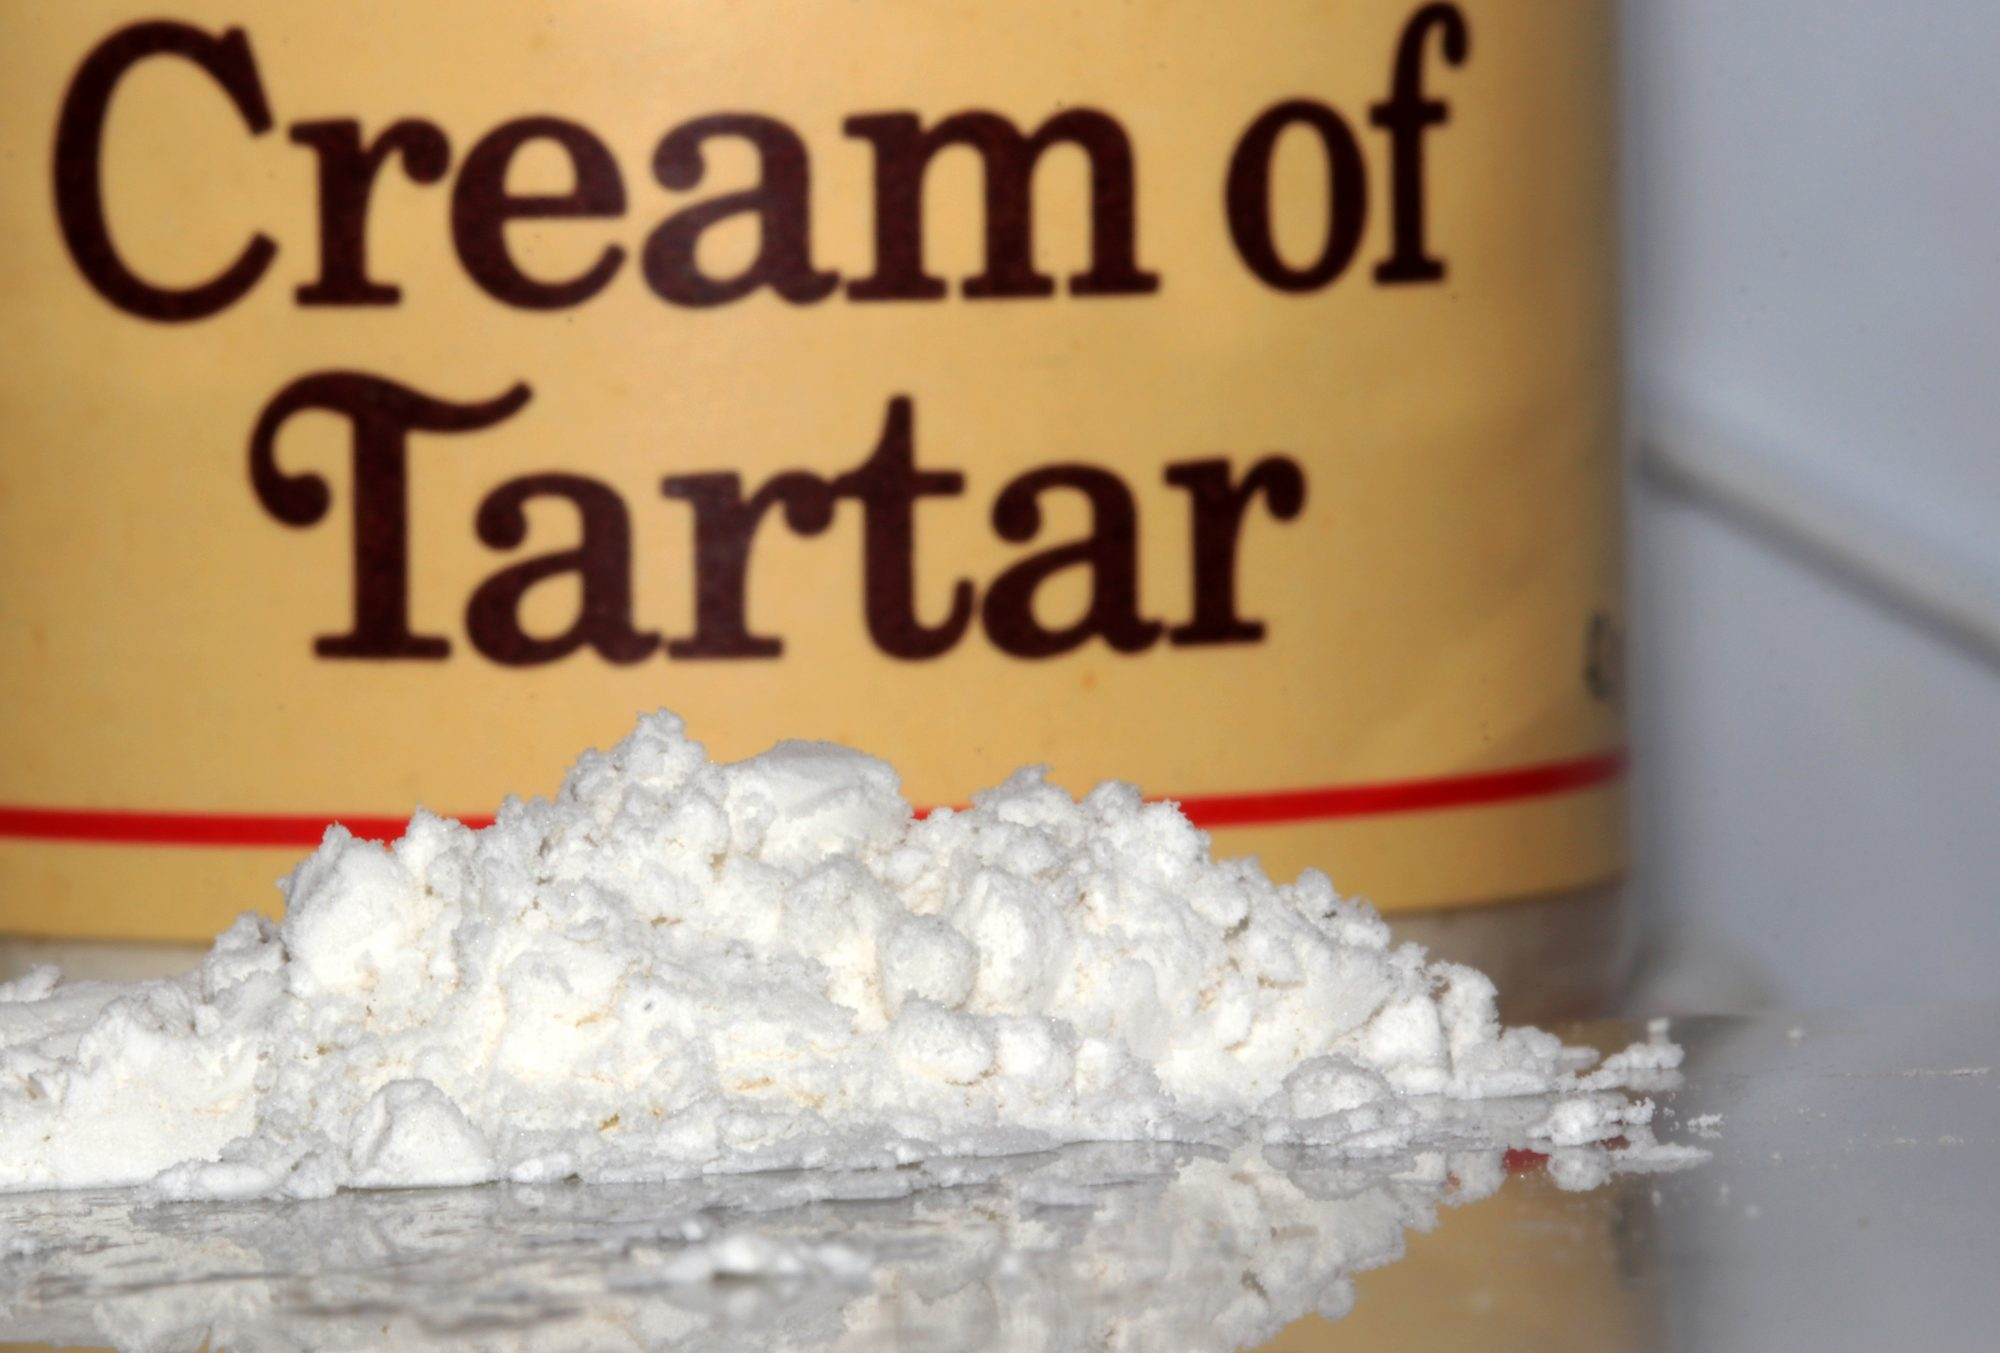 What Is Cream of Tartar—and What Does It Do?